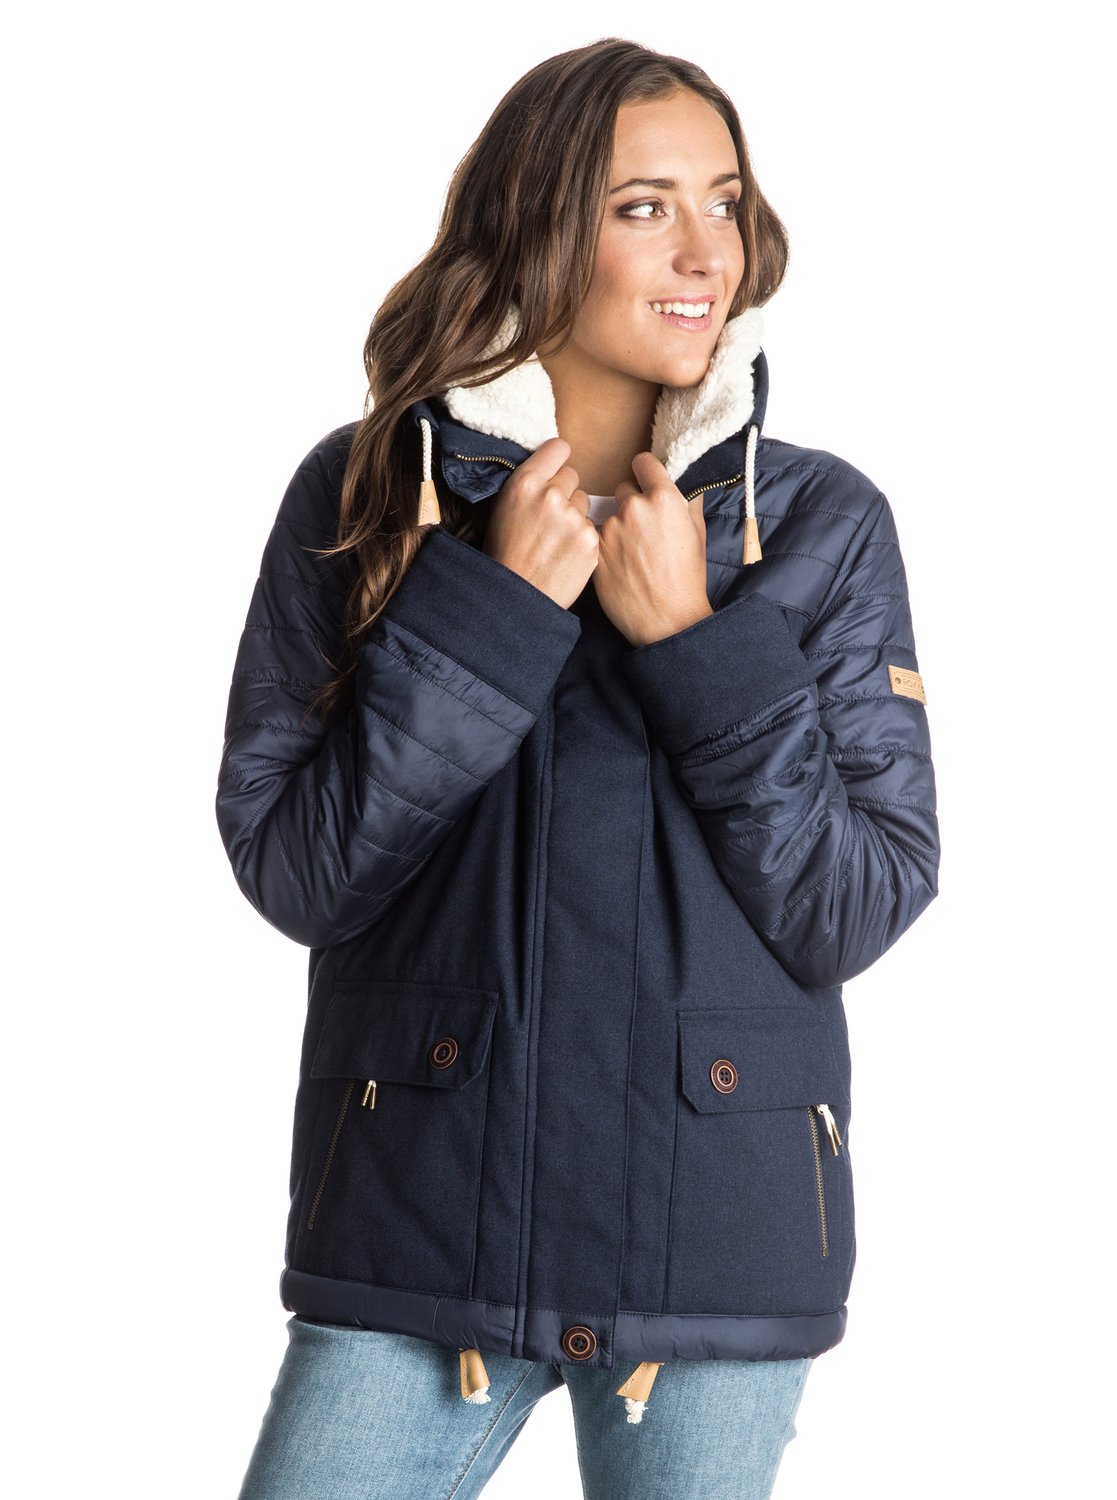 Jasmin - Cold Weather Jacket for Women Roxy Jasmin - Jacket